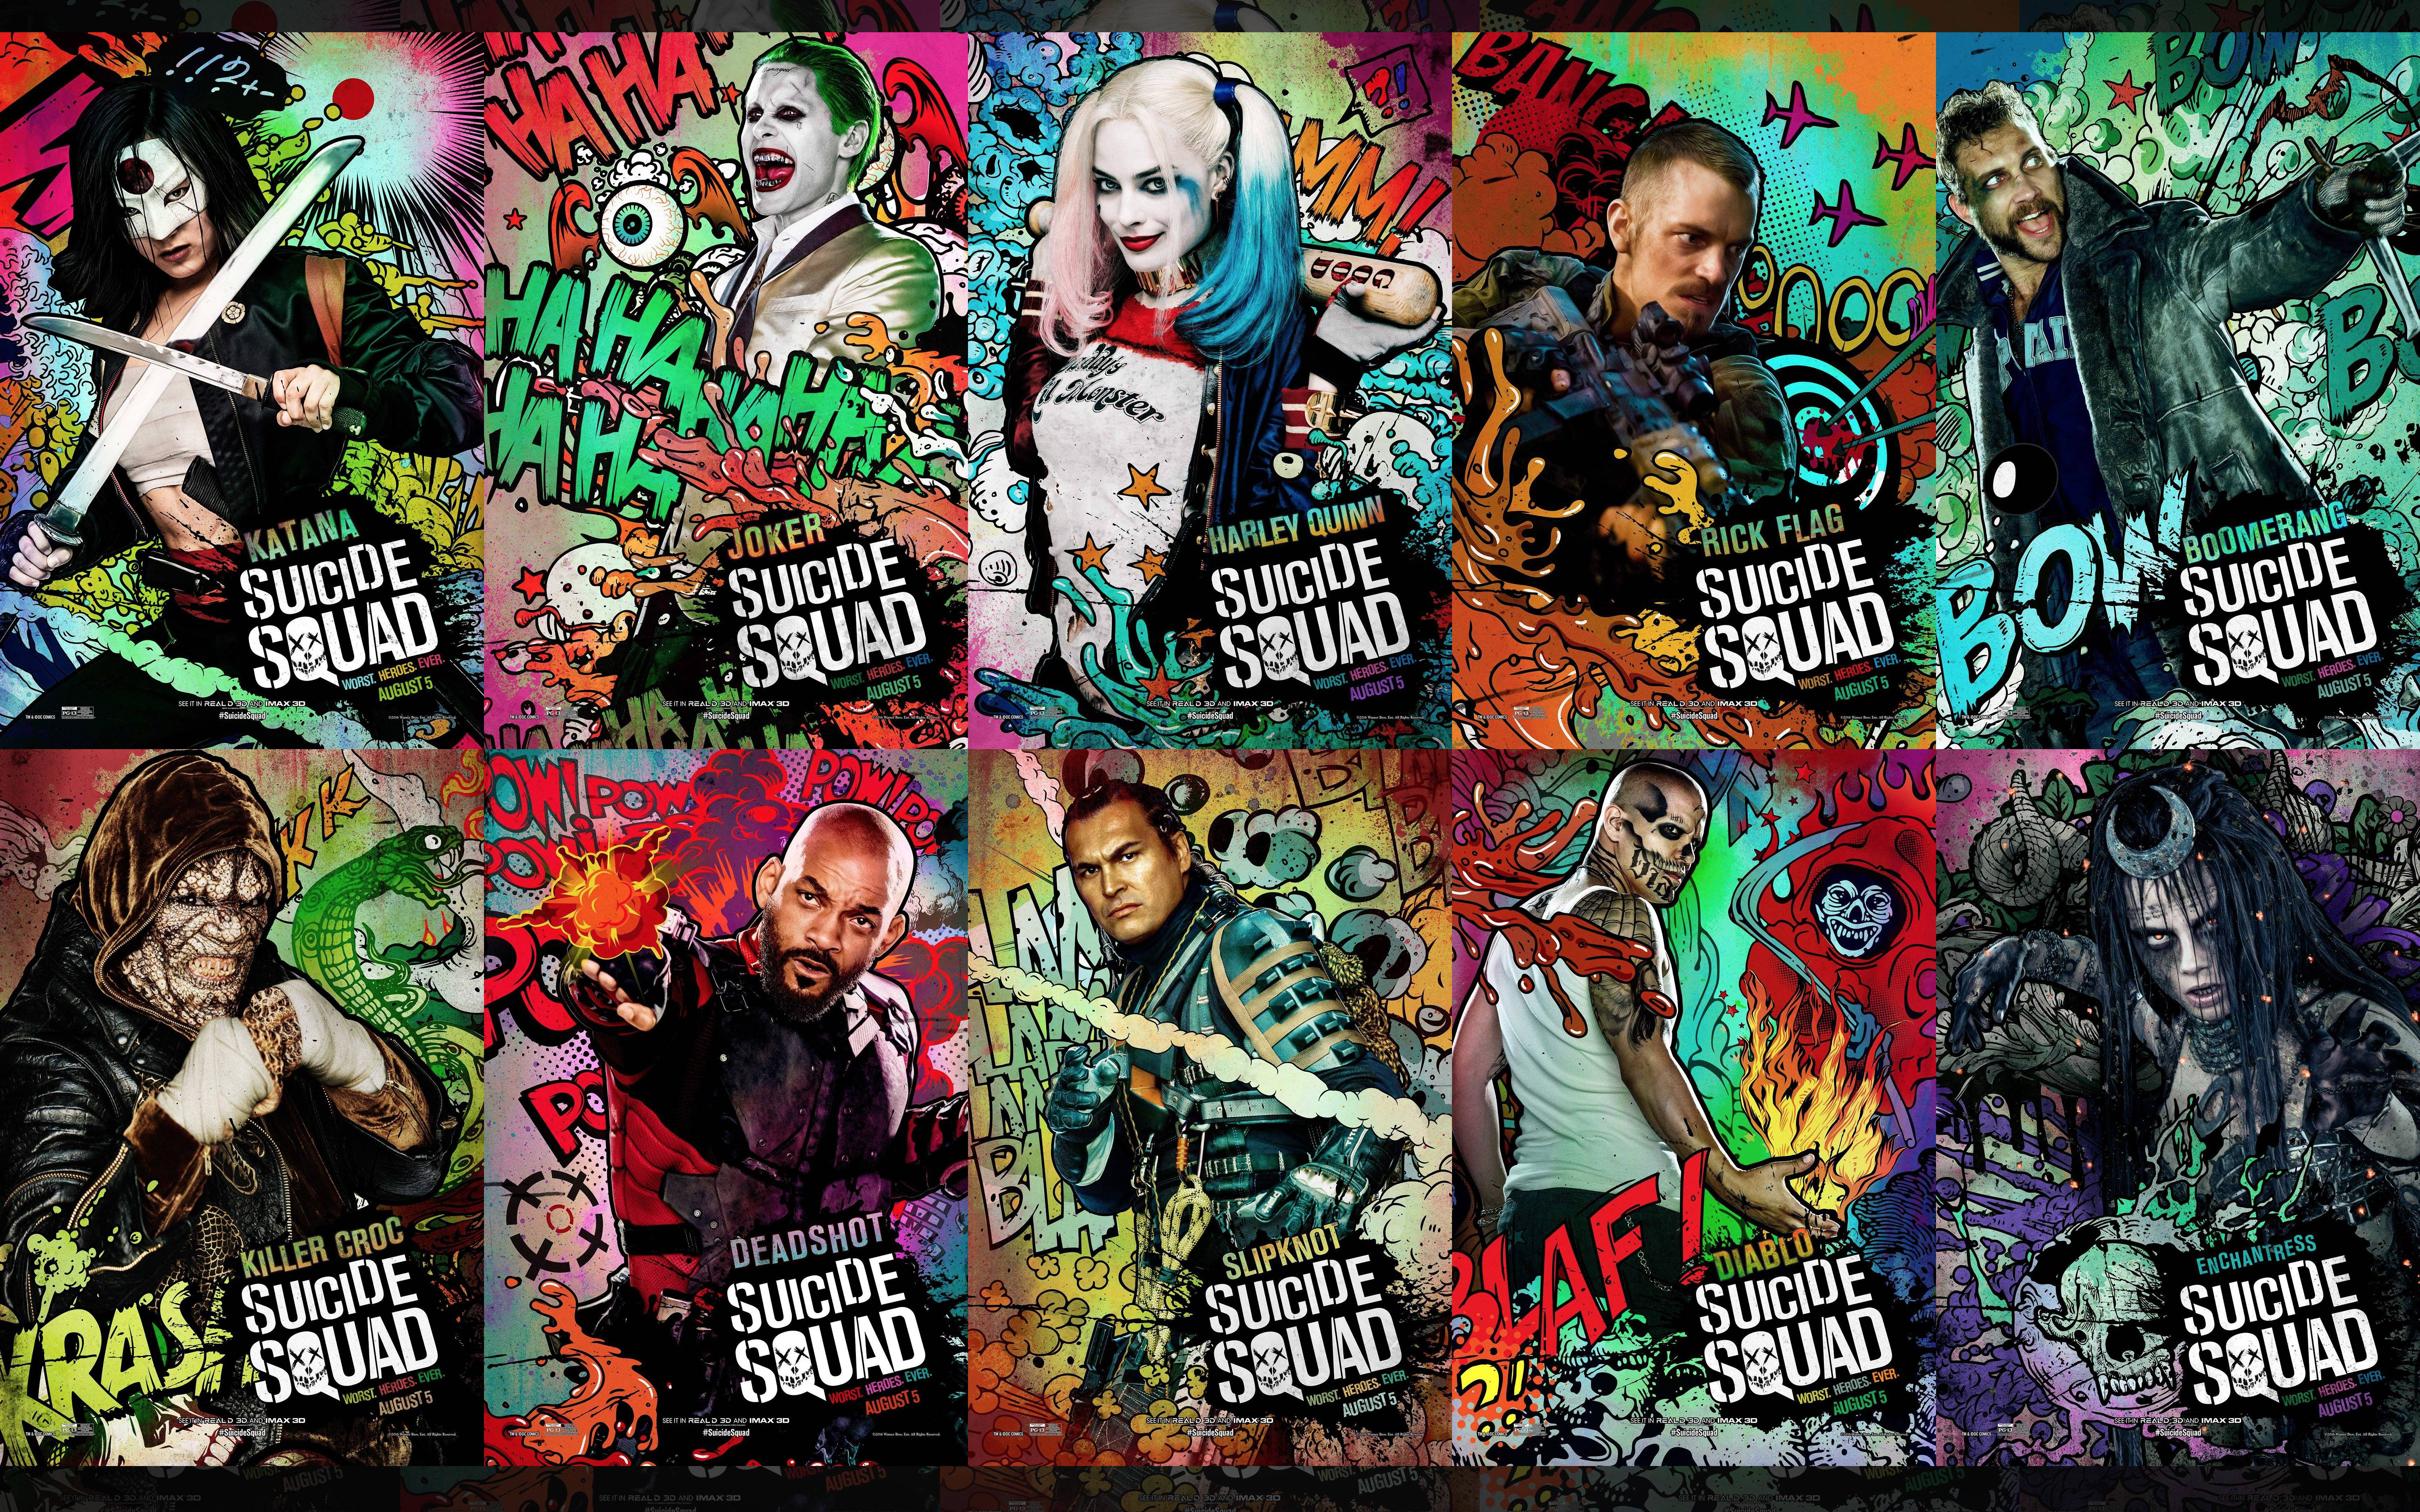 Suicide Squad 2 Wallpapers - Wallpaper Cave